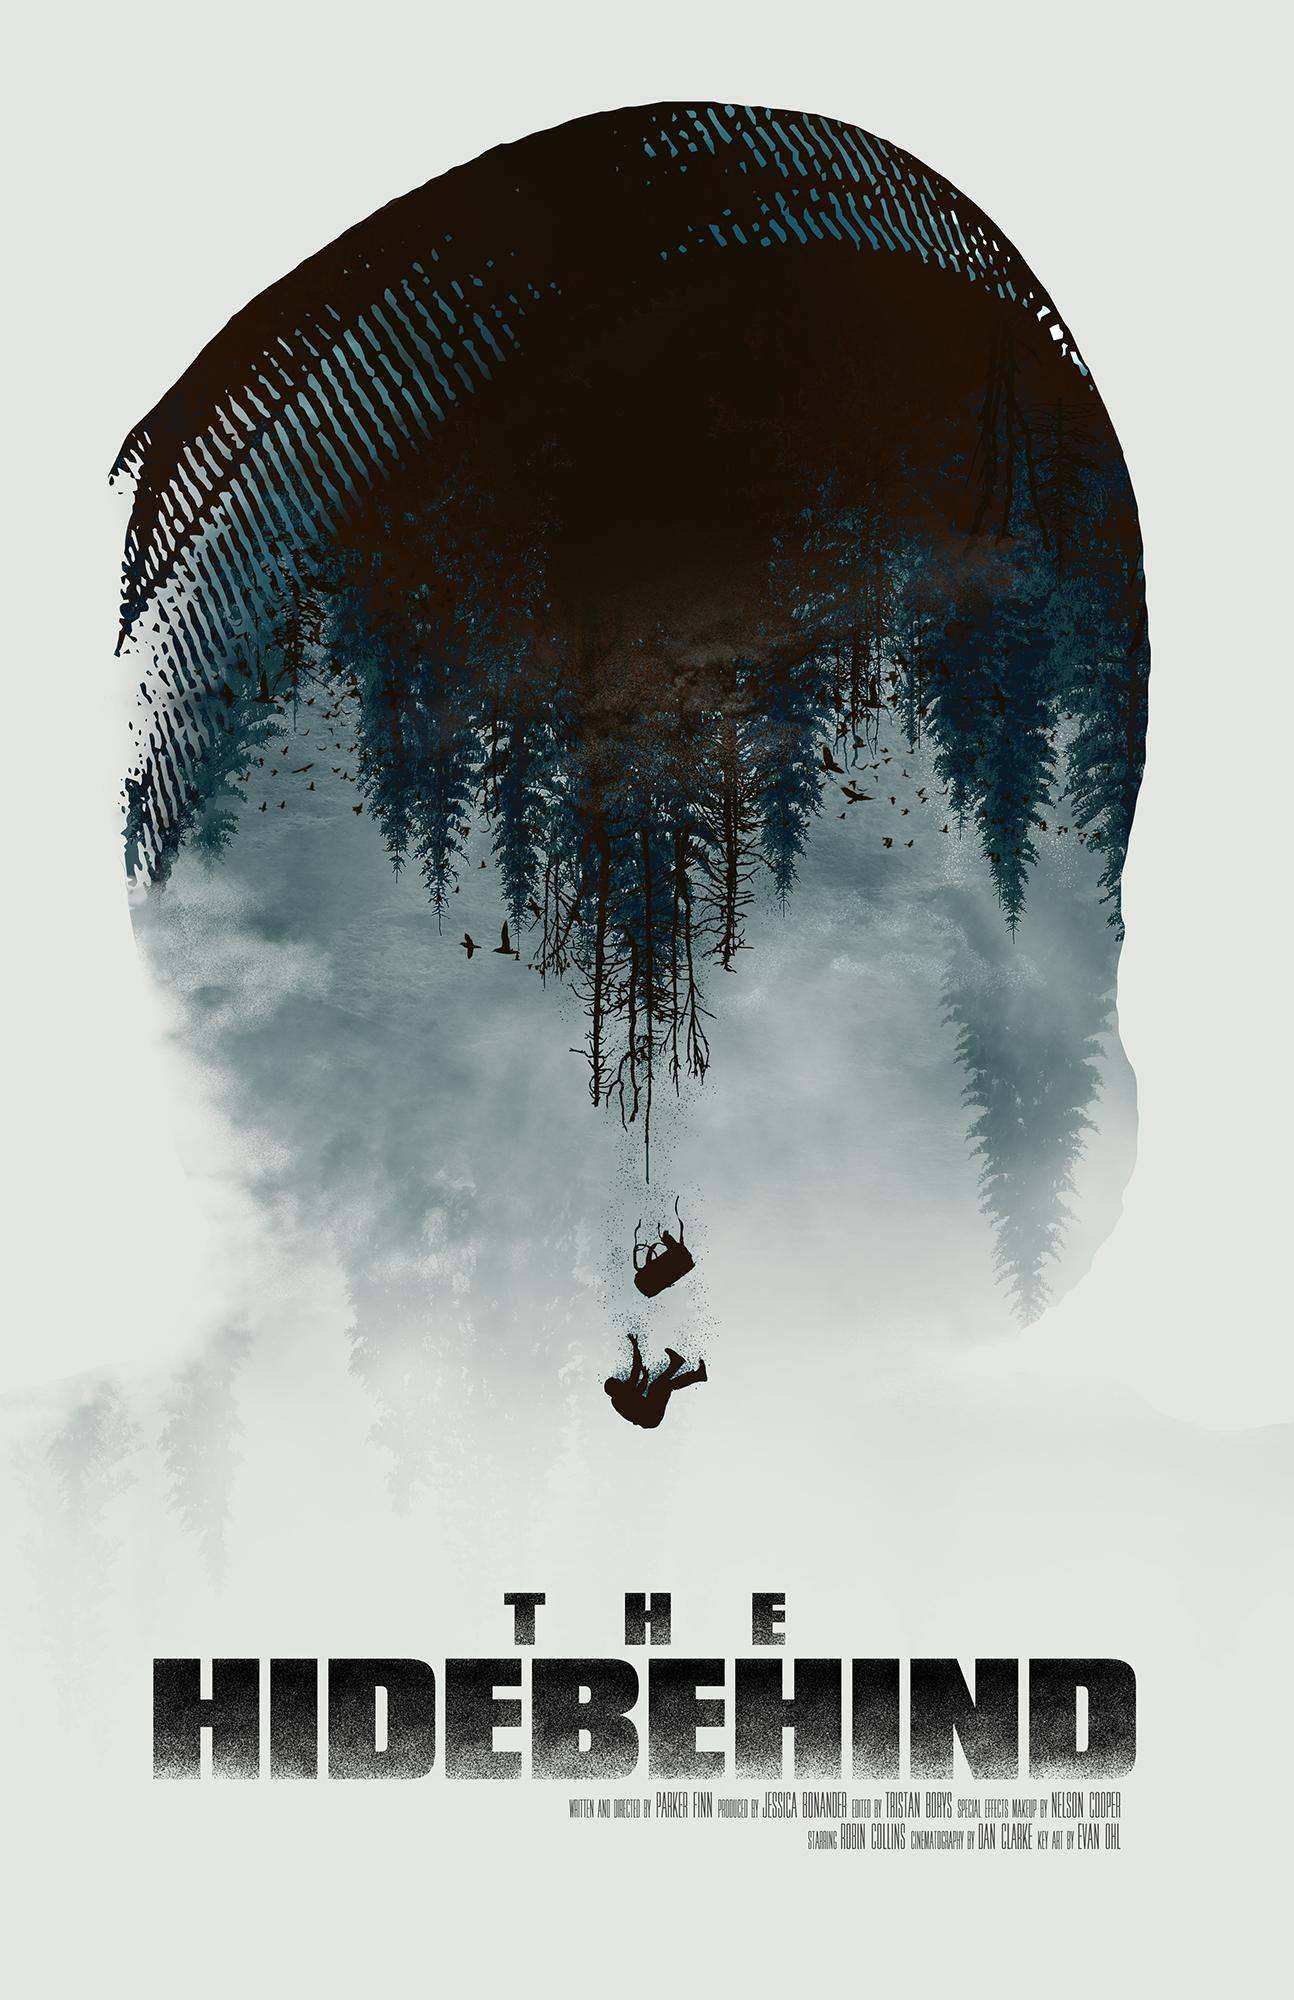 thehidebehind-movie-poster_keyart.jpg